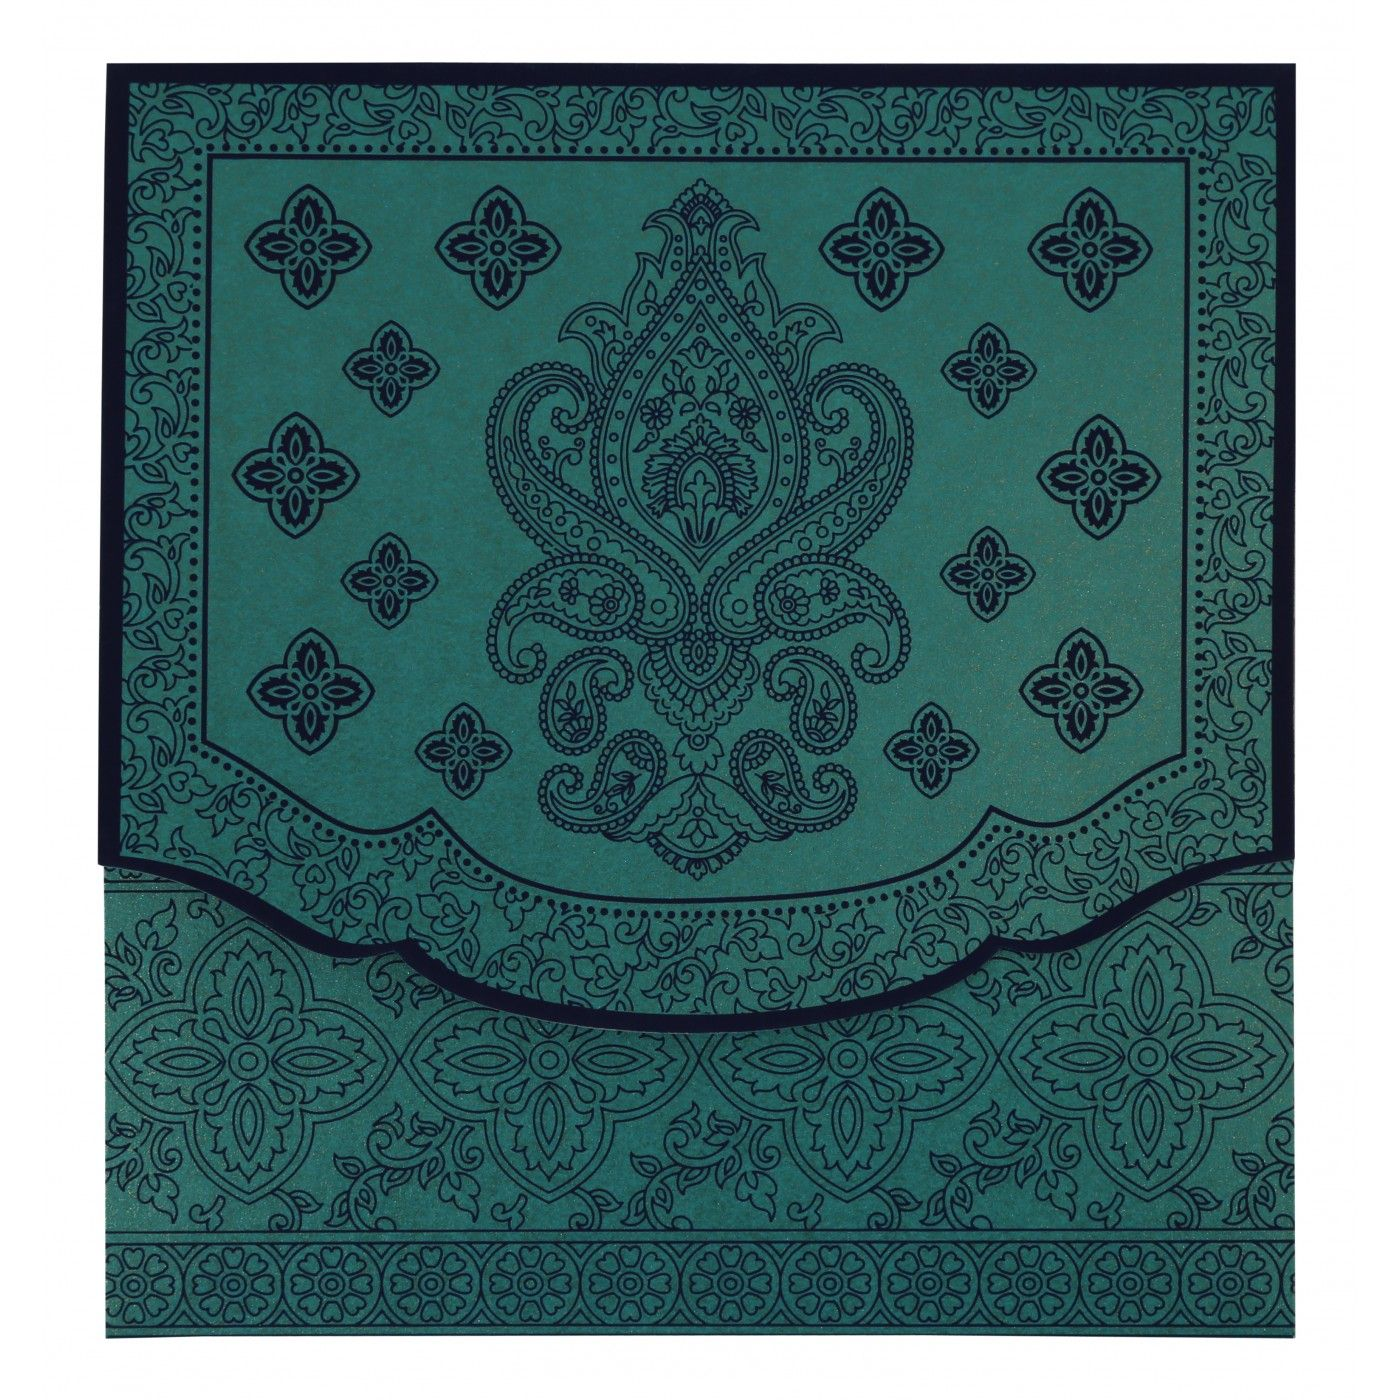 TURQUOISE SHIMMERY SCREEN PRINTED WEDDING INVITATION : CI-800D - IndianWeddingCards